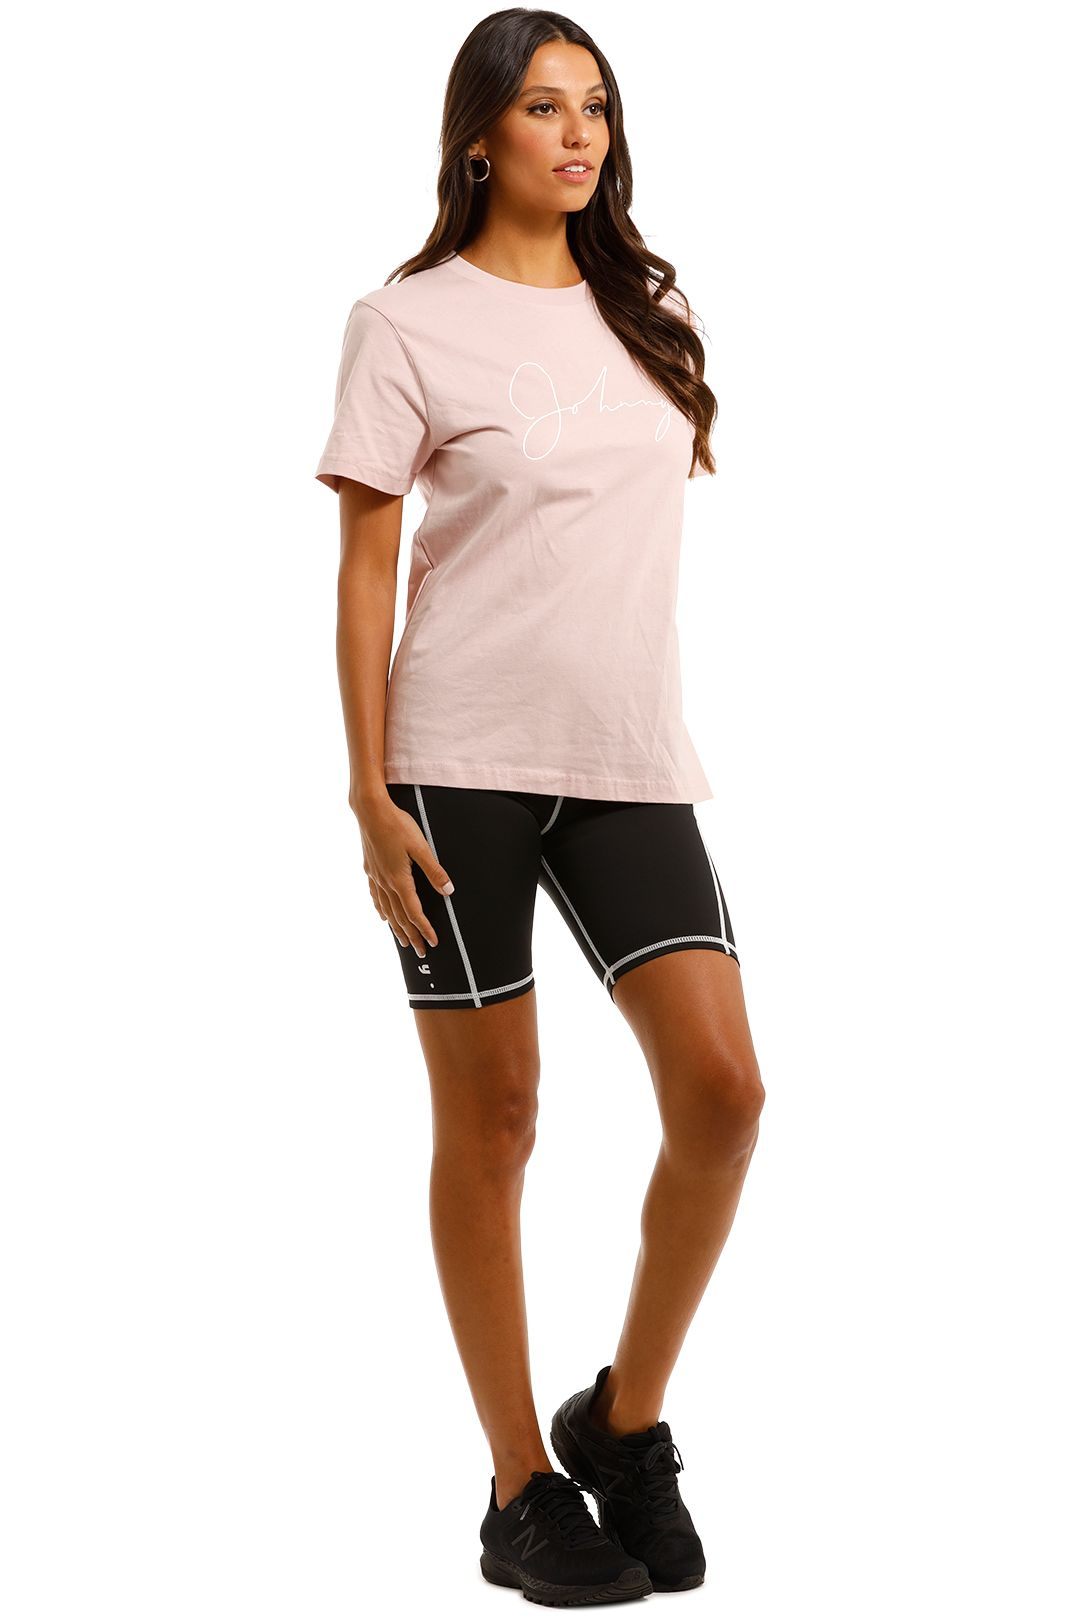 By Johnny Unisex Autograph Tee Pink Relaxed Fit